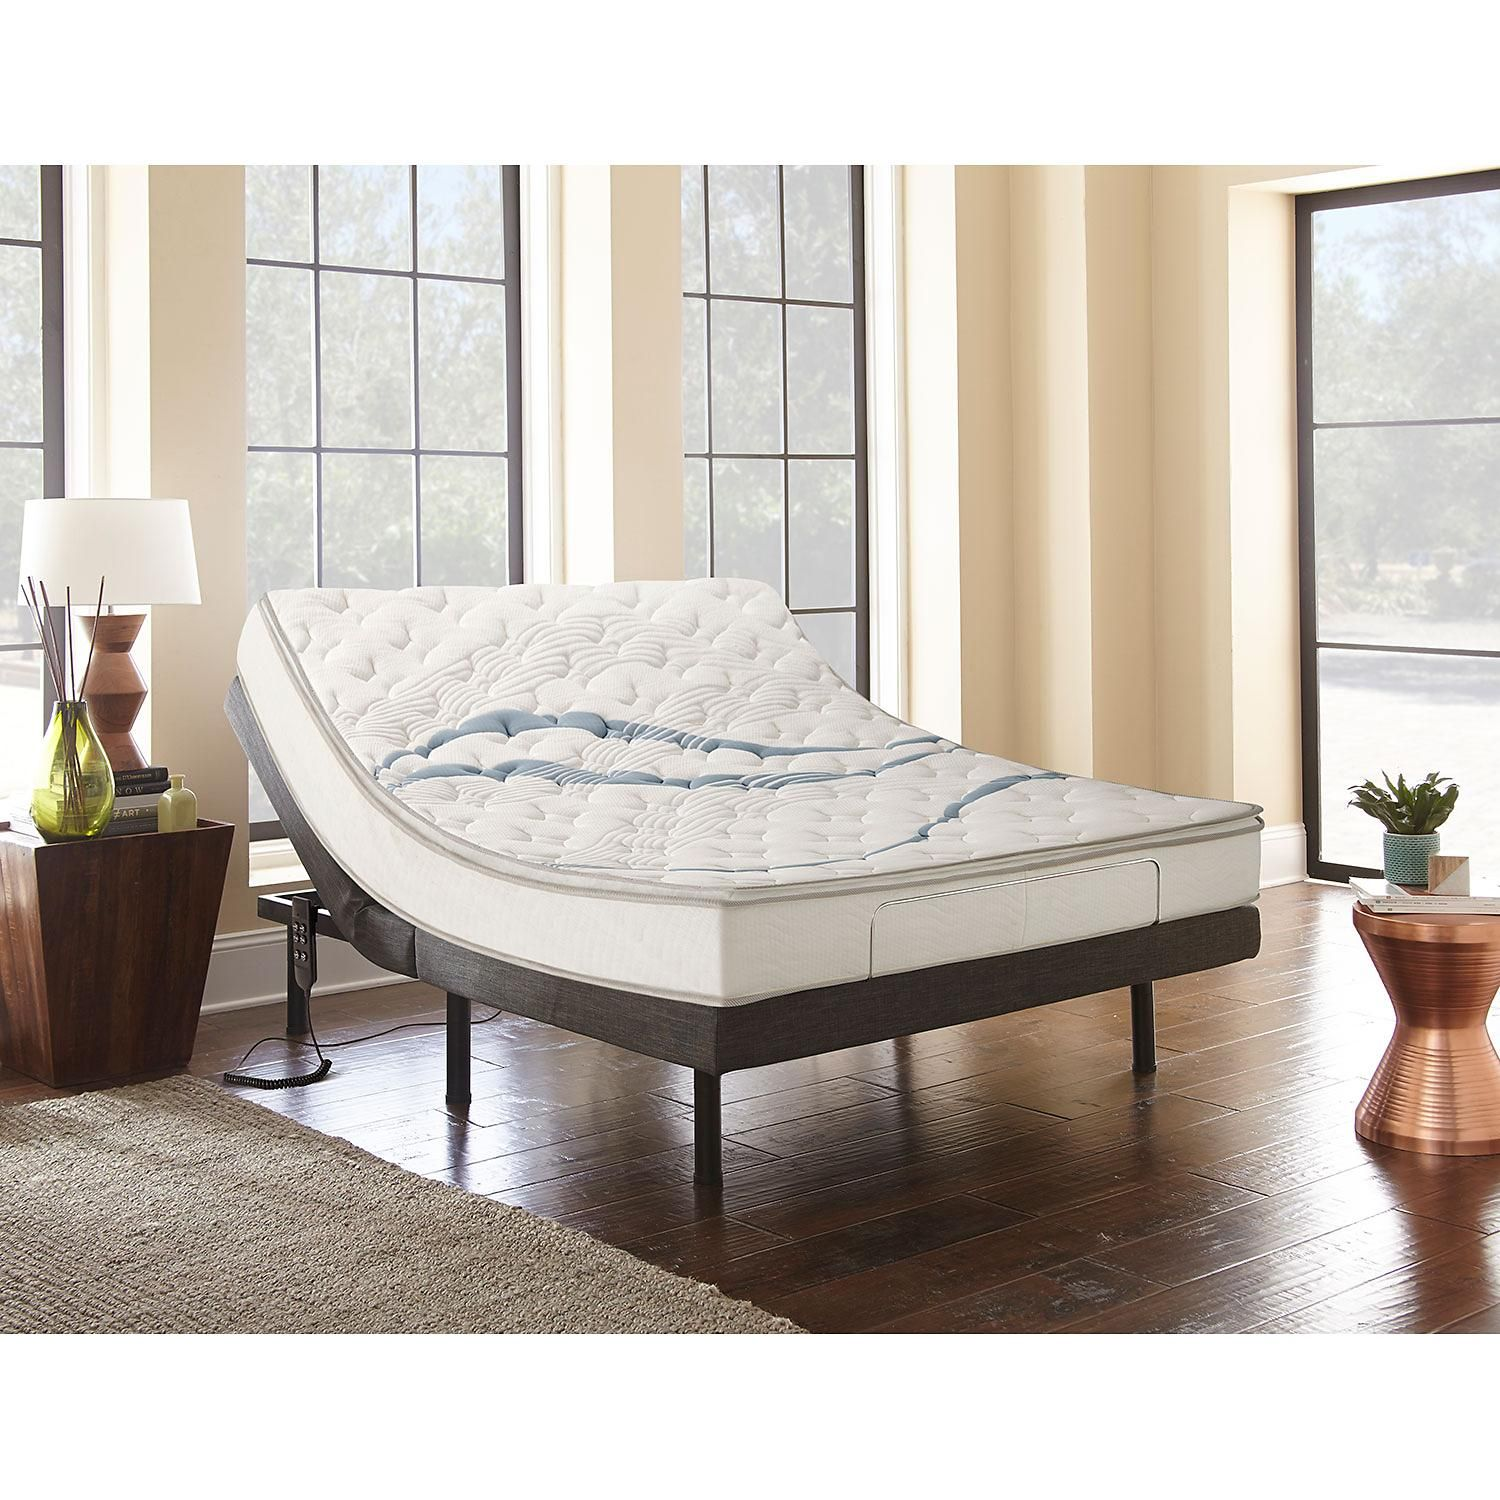 "Classic Dream Sleep Lux 10"" Mattress (Assorted Sizes"